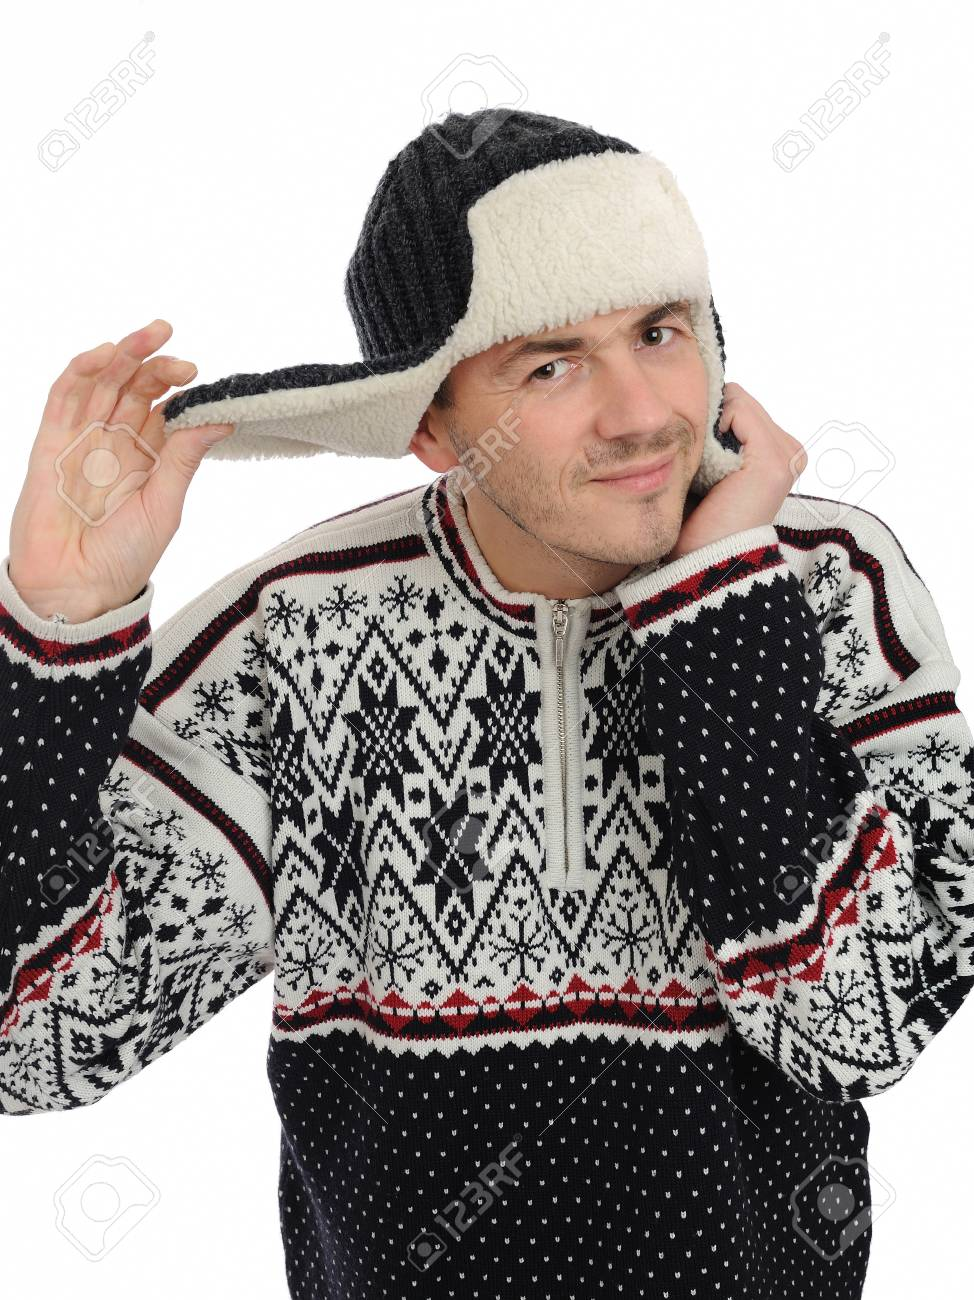 expressions. Funny winter man in warm hat and clothes listening. isolated on white background Stock Photo - 8244166